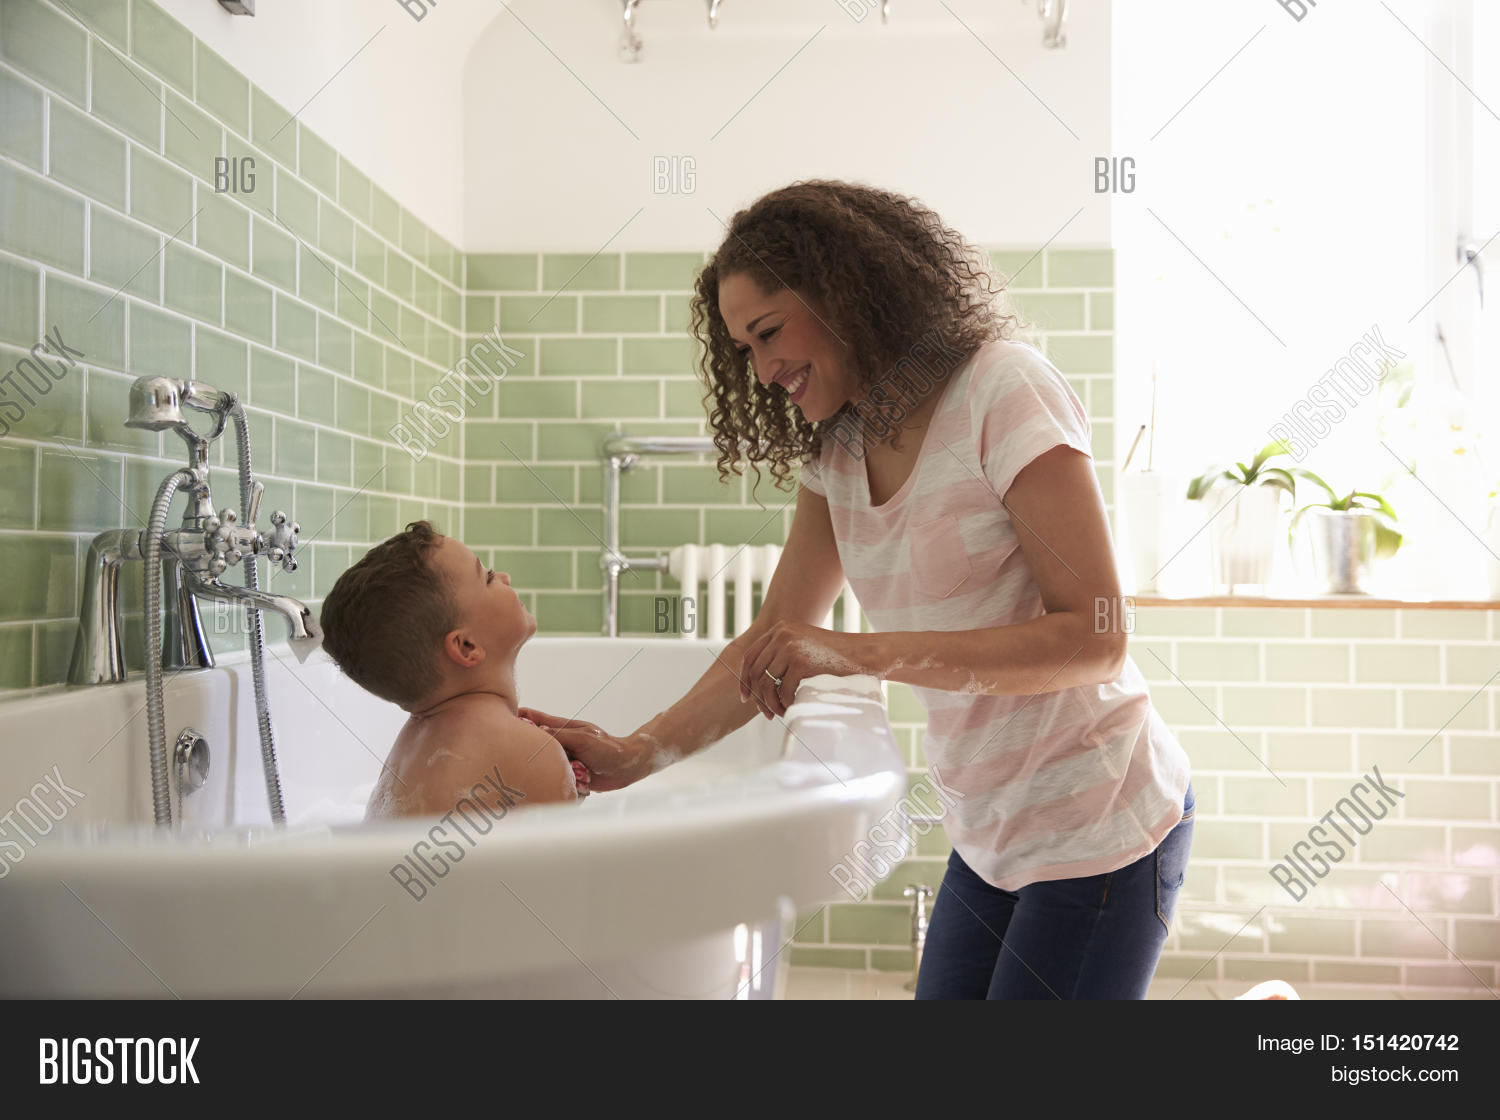 Mother son having fun bath time image photo bigstock for Mom and son in bathroom